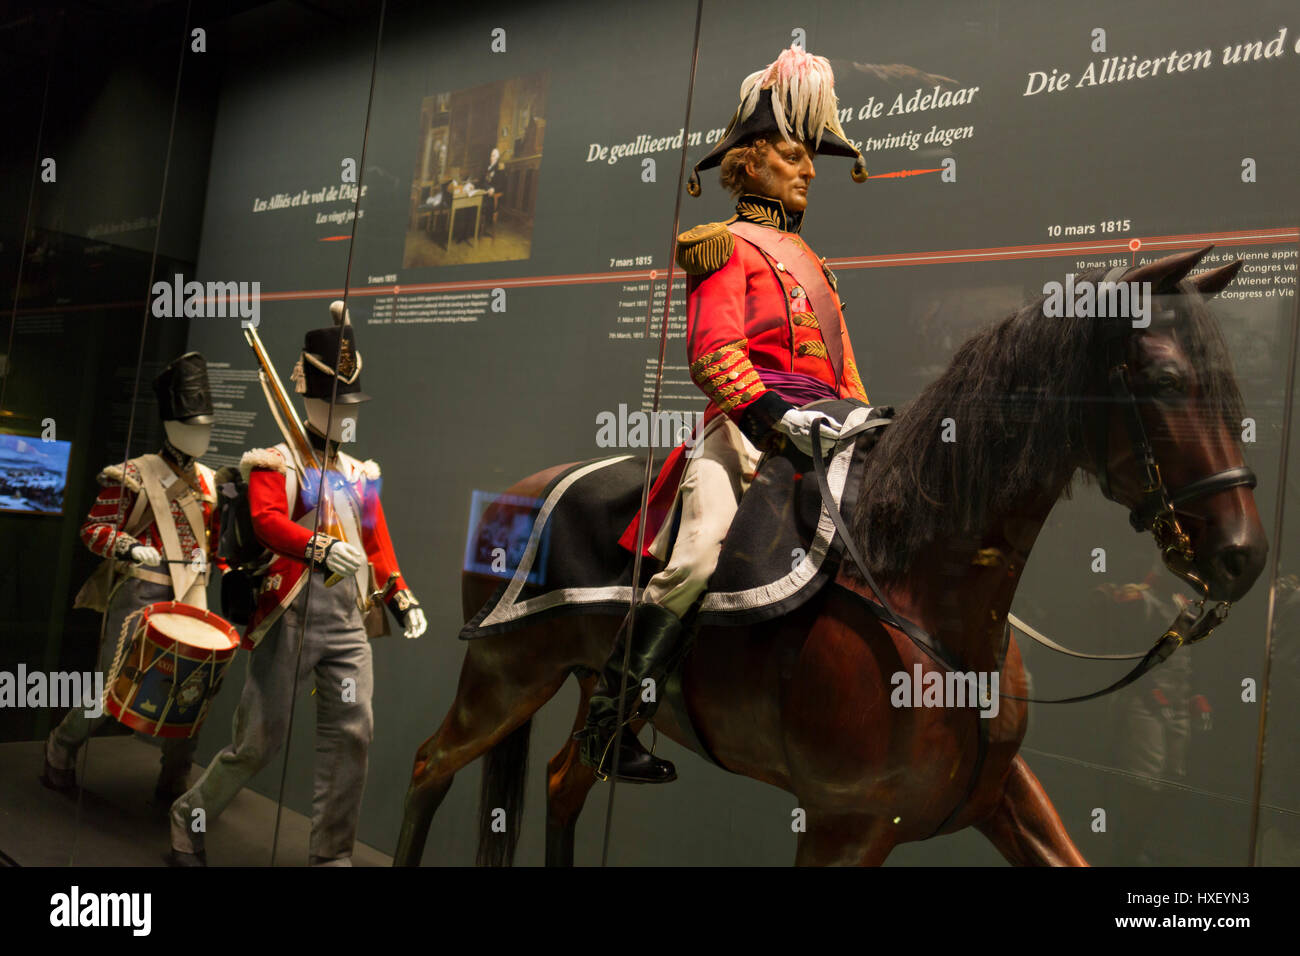 The Duke of Wellington sits on his horse, a waxwork exhibit inside the Memorial 1815 exhibition at the Waterloo - Stock Image